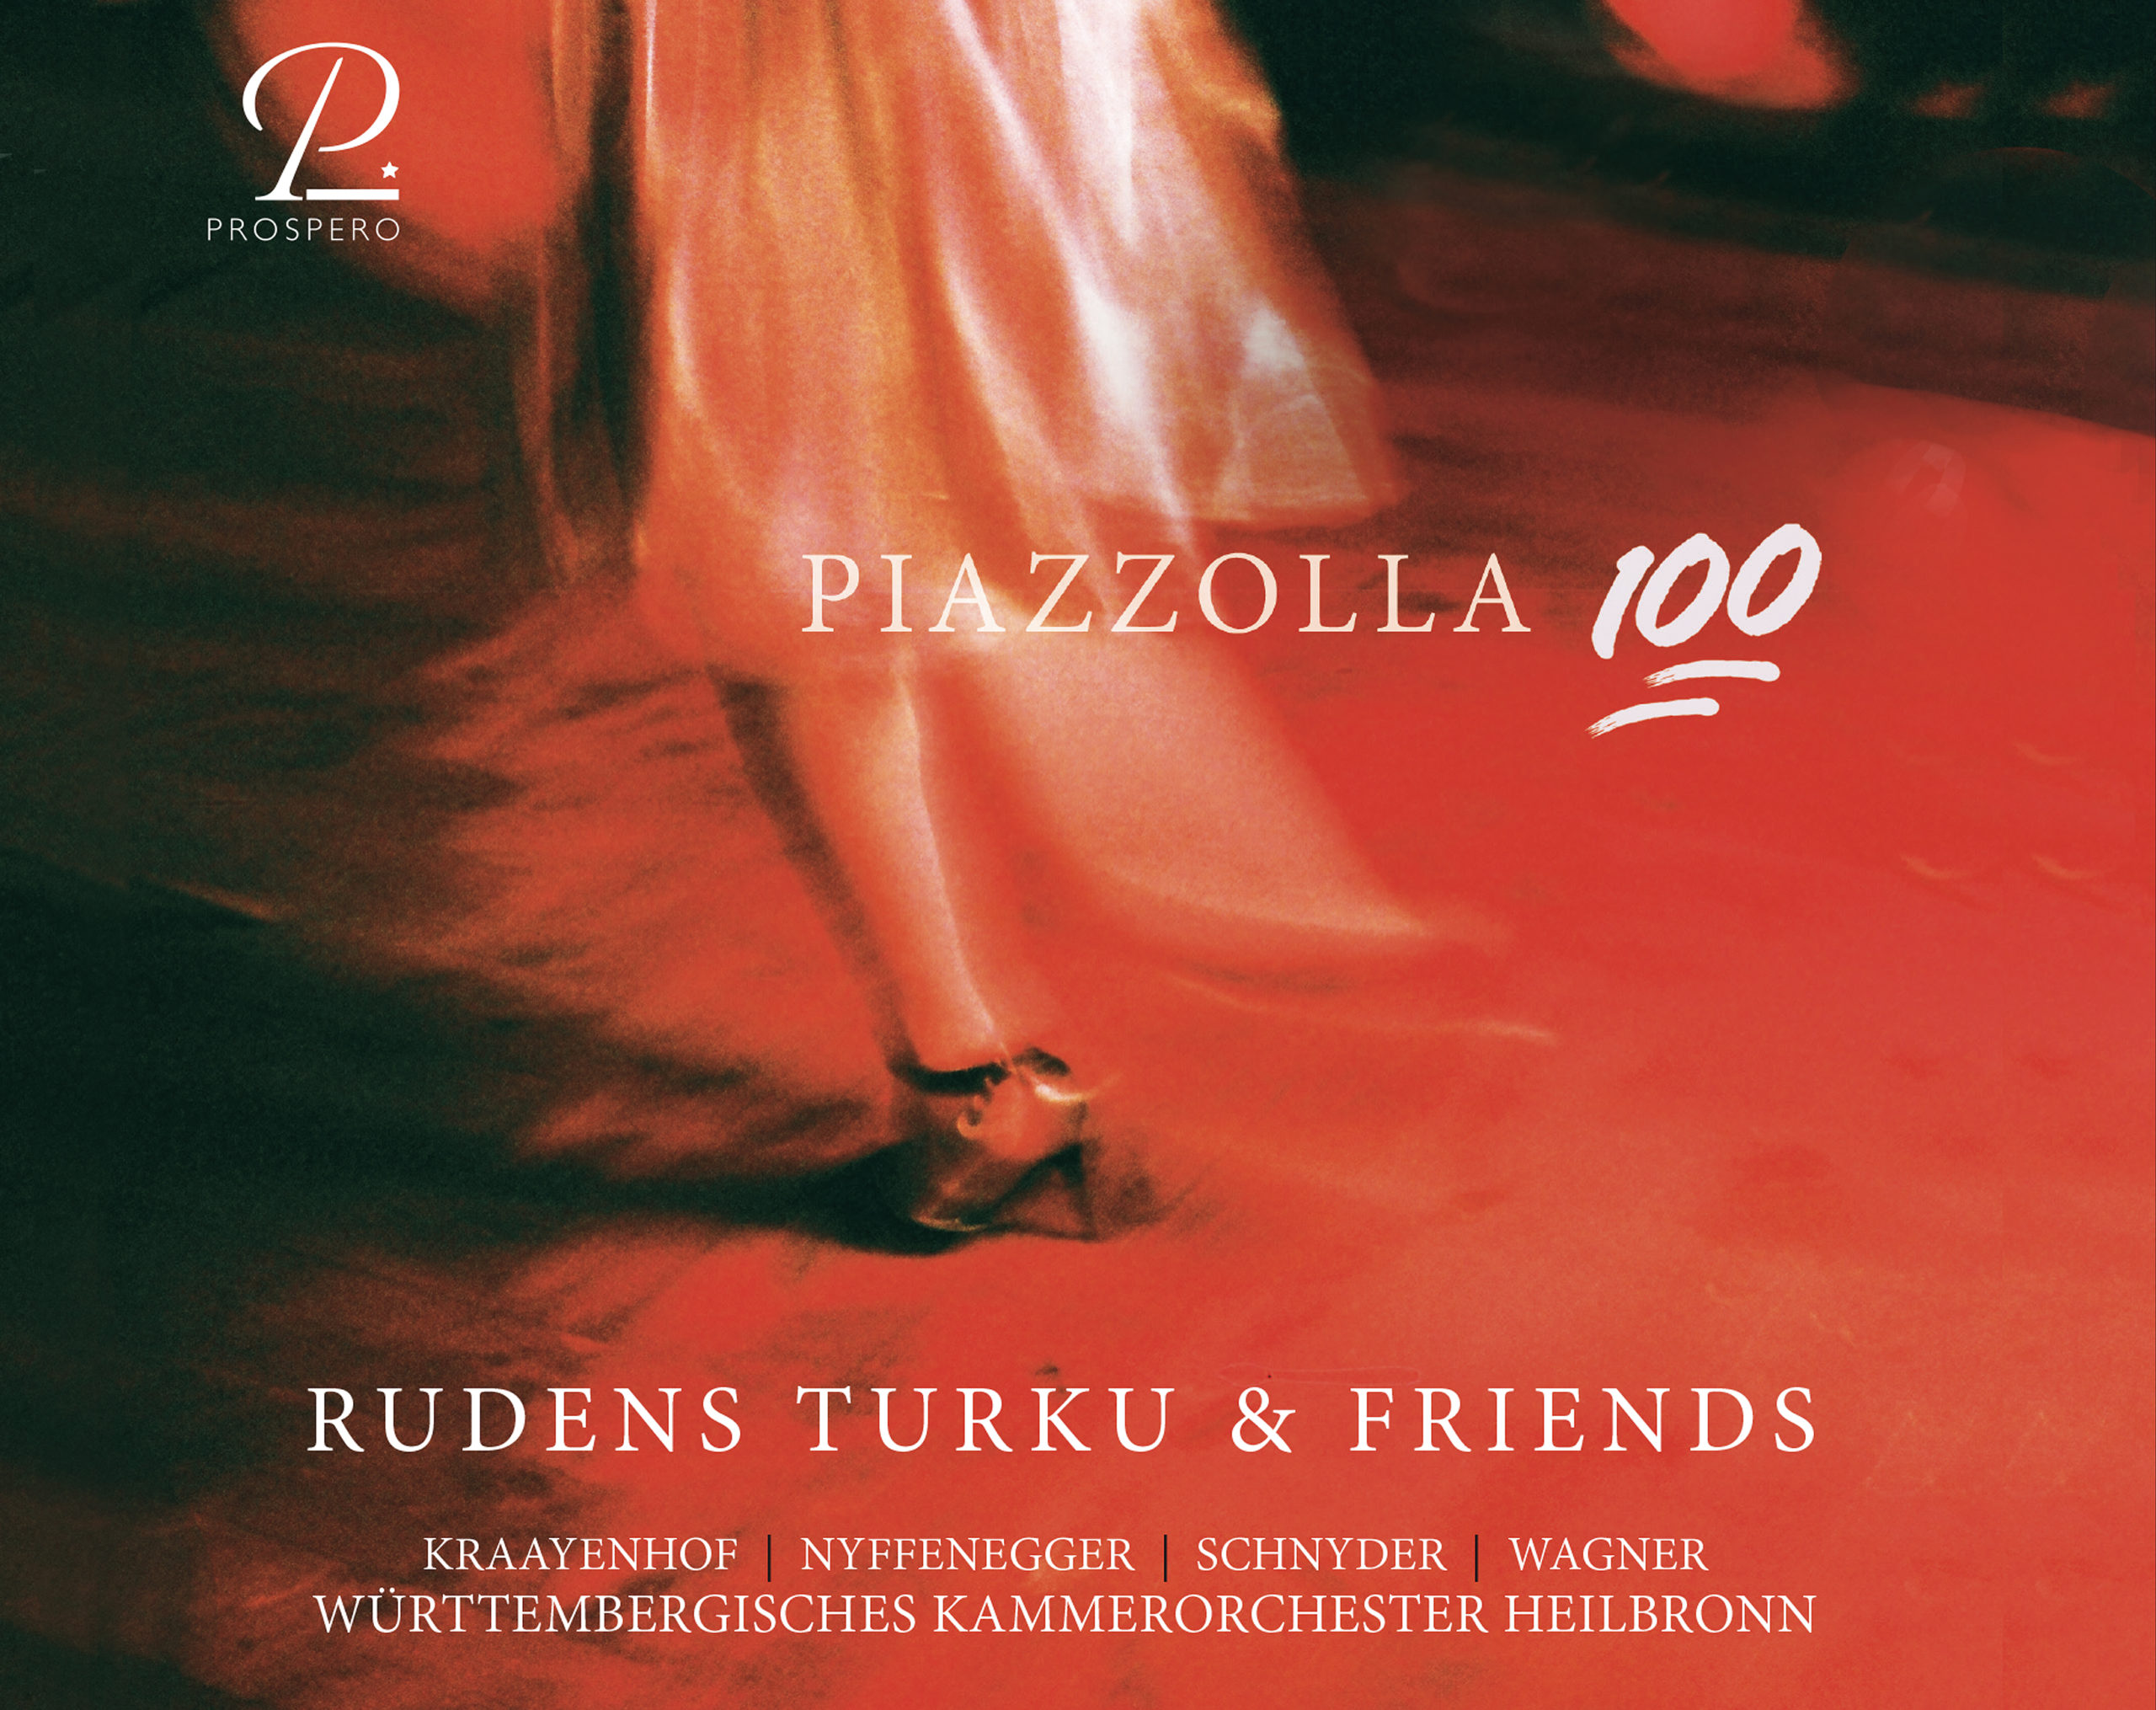 Piazzolla 100 - Cover Art